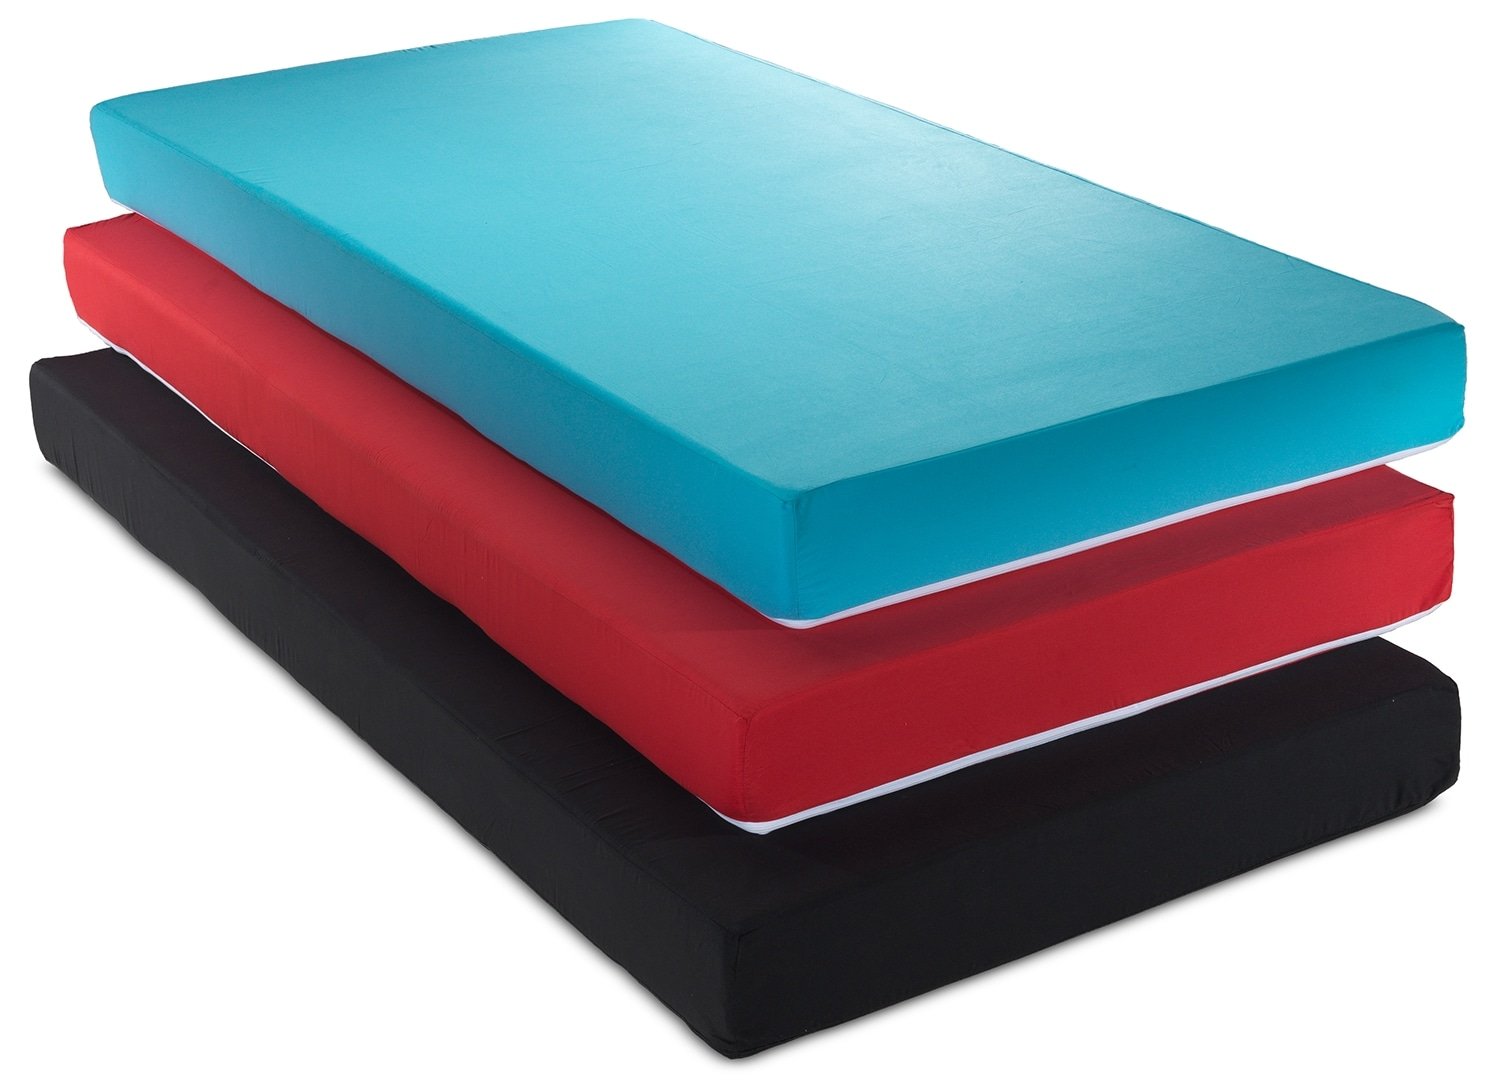 Mattresses and Bedding - Therapedic Cushion Firm Twin Mattress - Preselected Colour